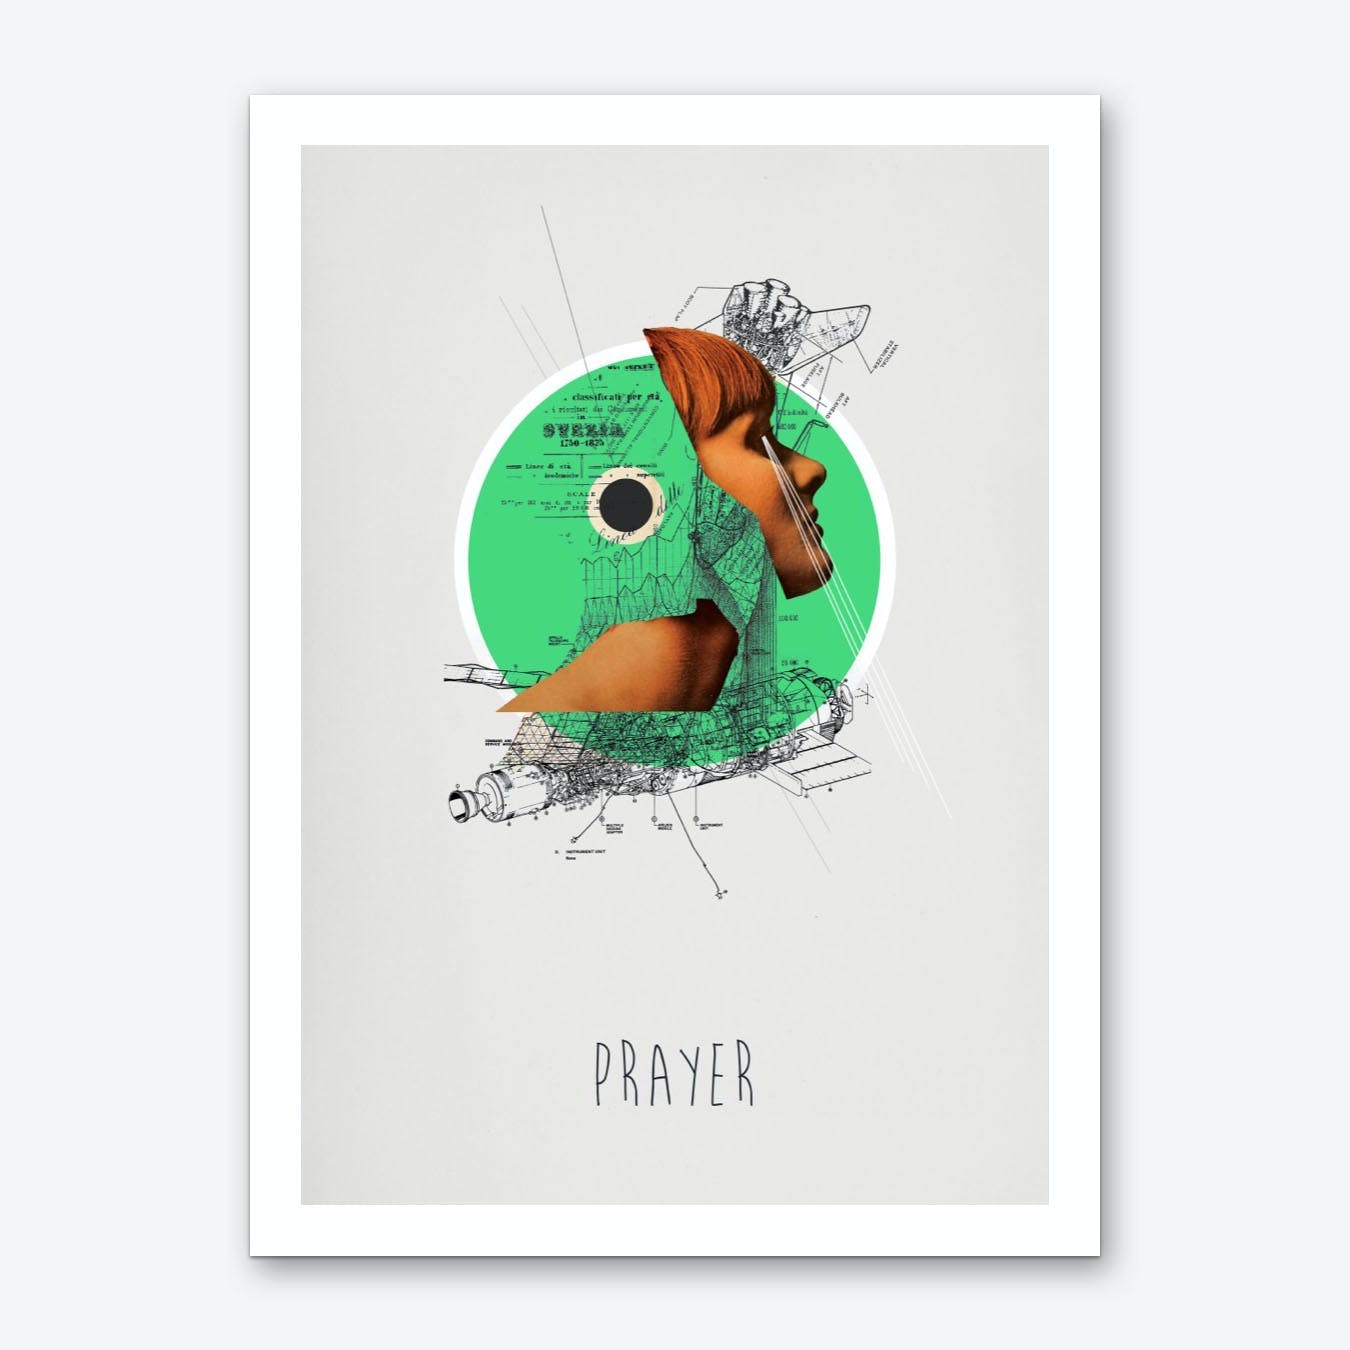 Prayer Art Print